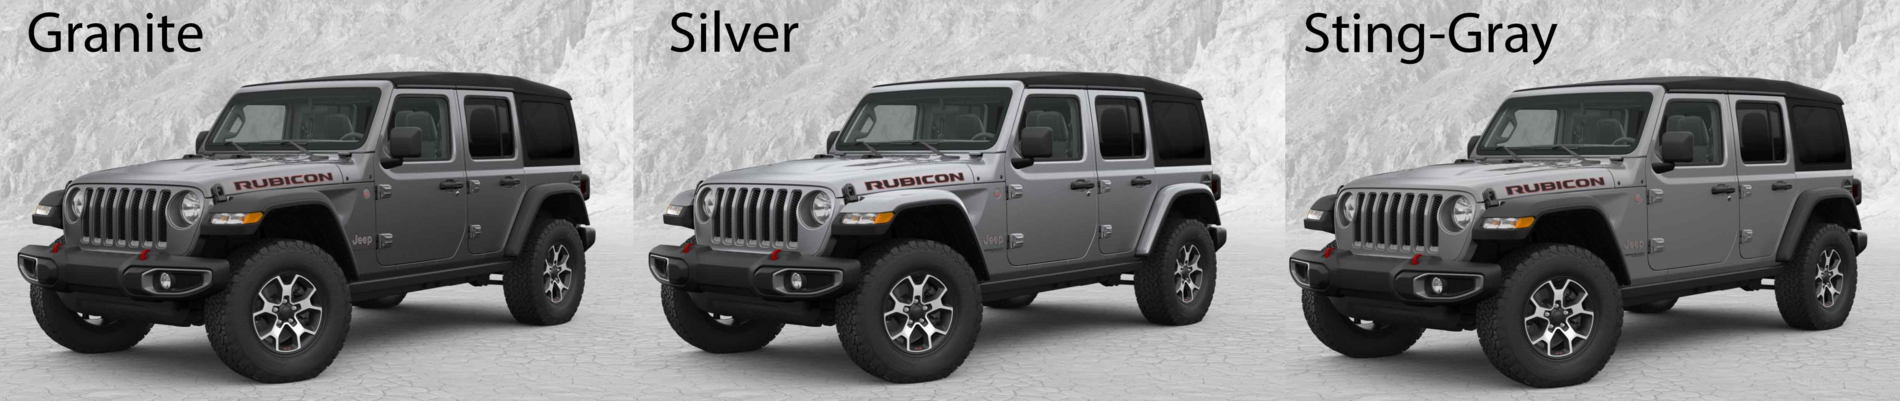 I Give You Sting Gray 2018 Jeep Wrangler Forums Jl